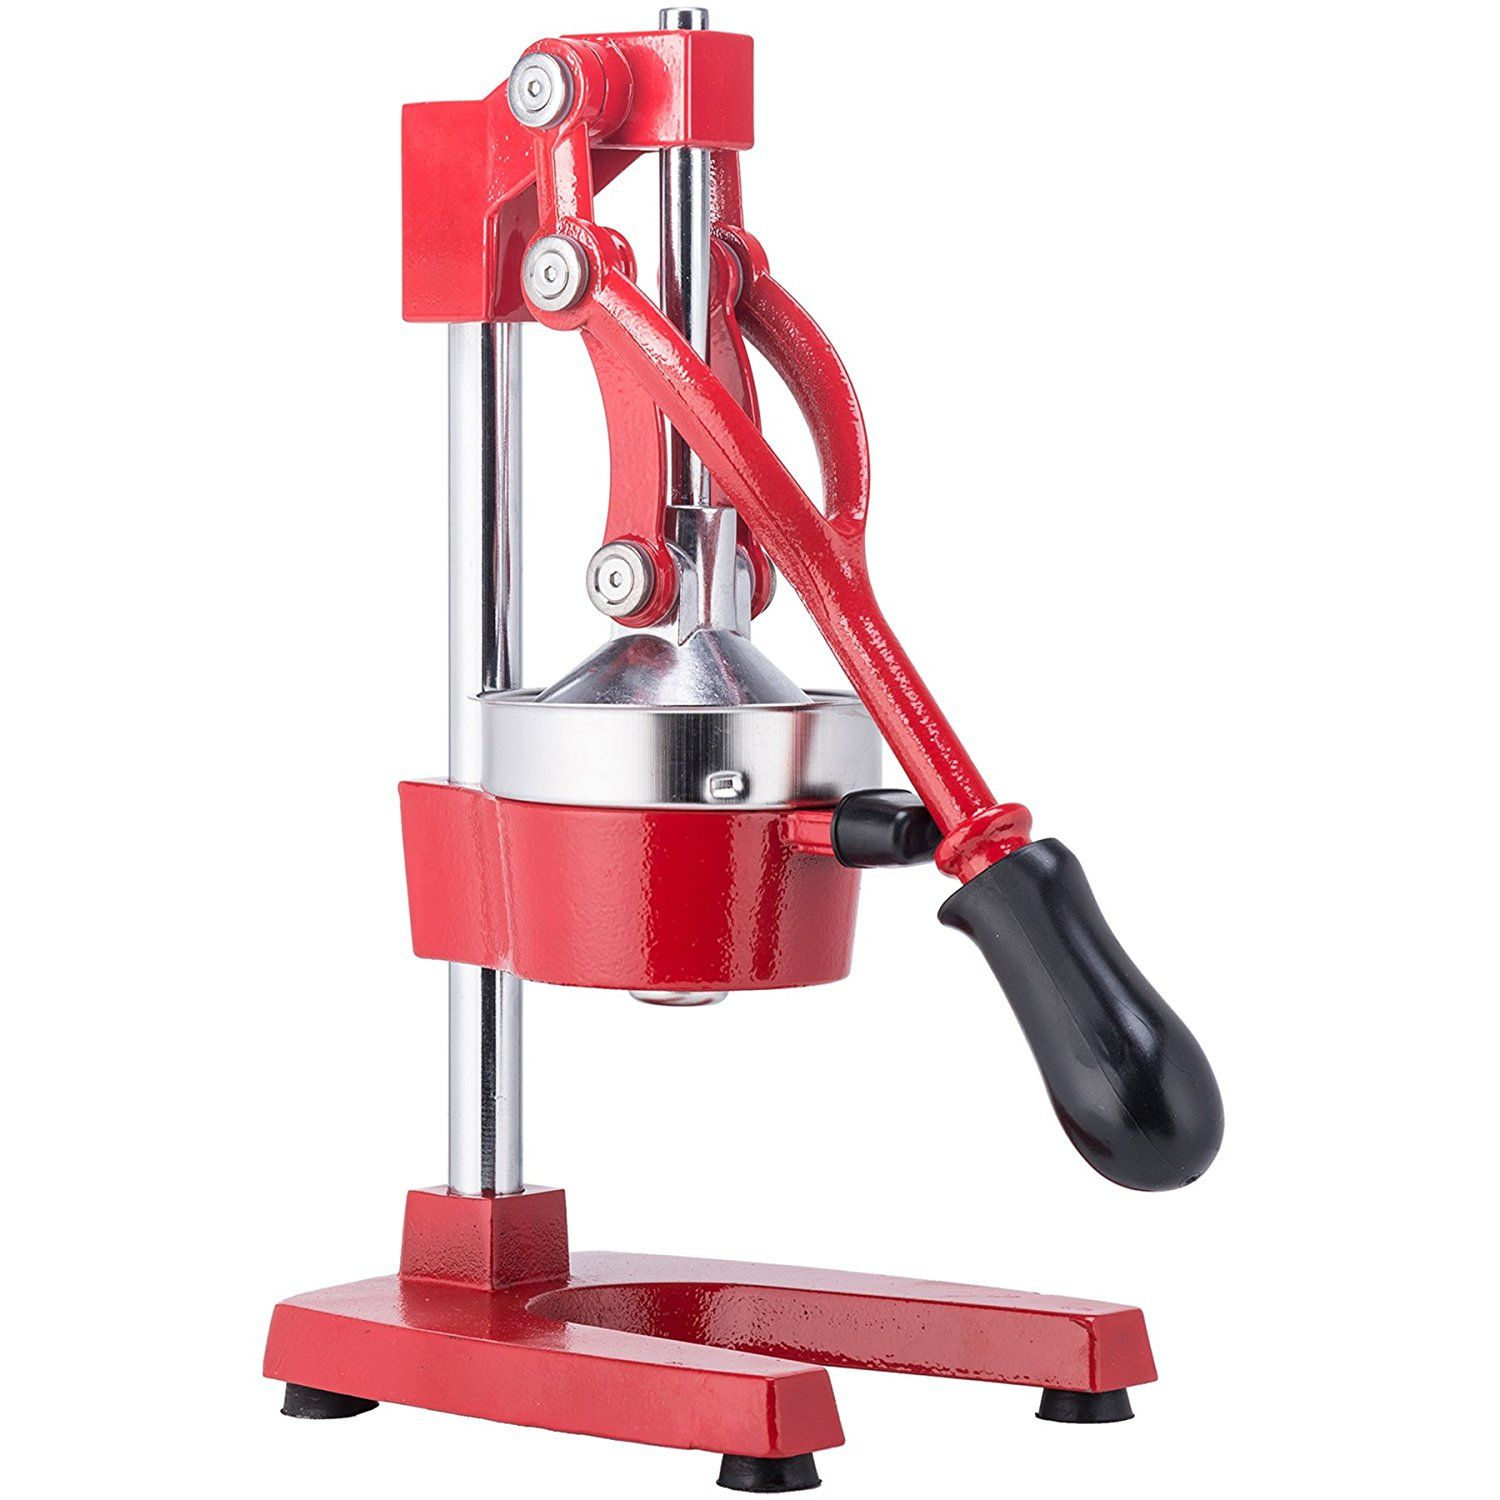 Red Kitchen Accessories Color Your Kitchen Fruit Juicer Red Kitchen Accessories Citrus Juicer